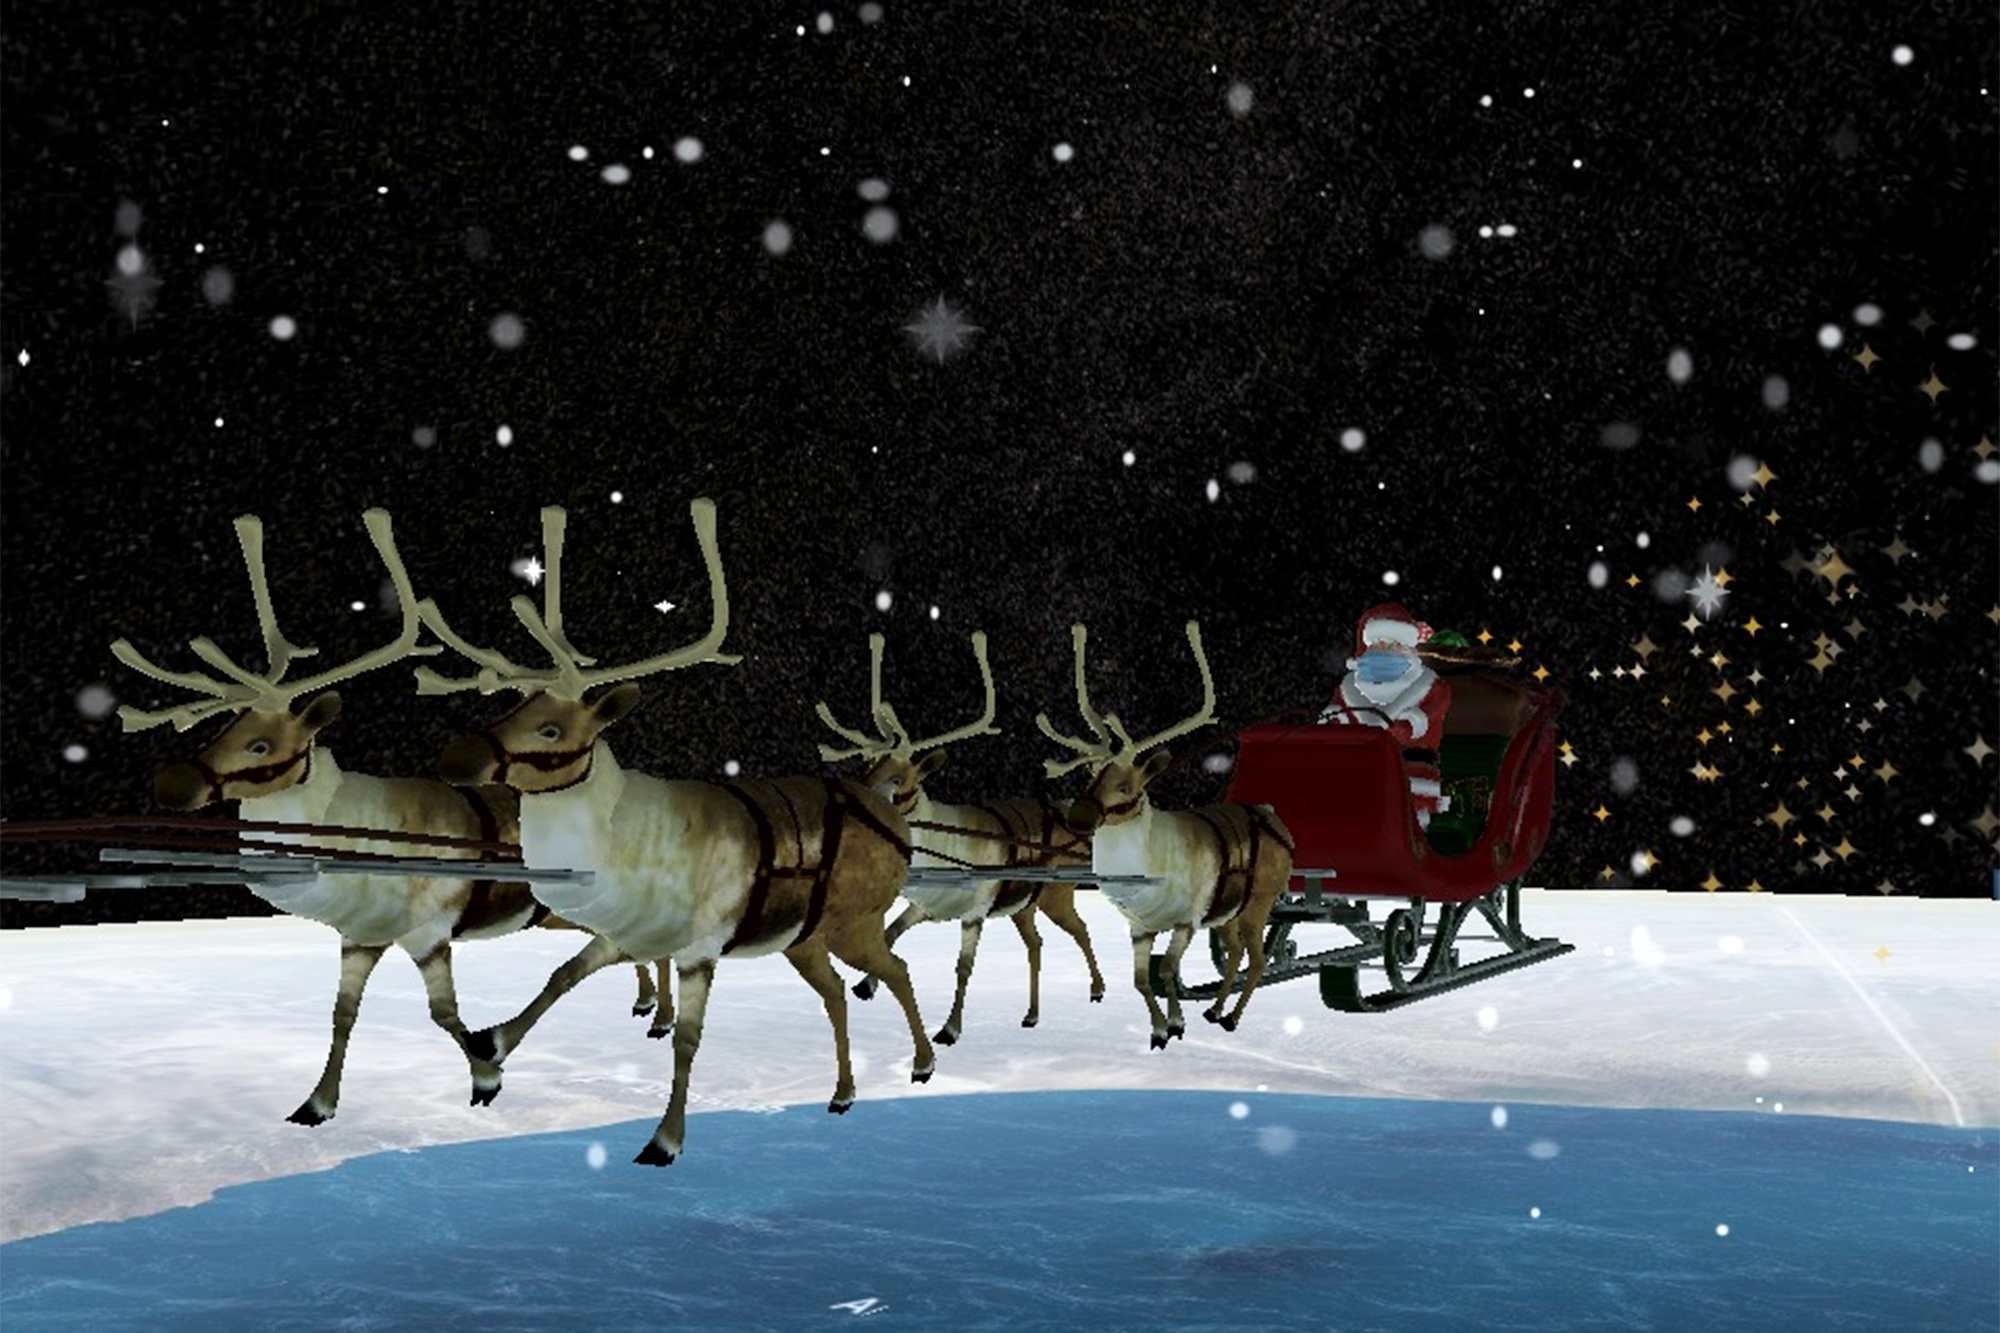 2020 Santa tracker is being COVID-safe, sporting mask